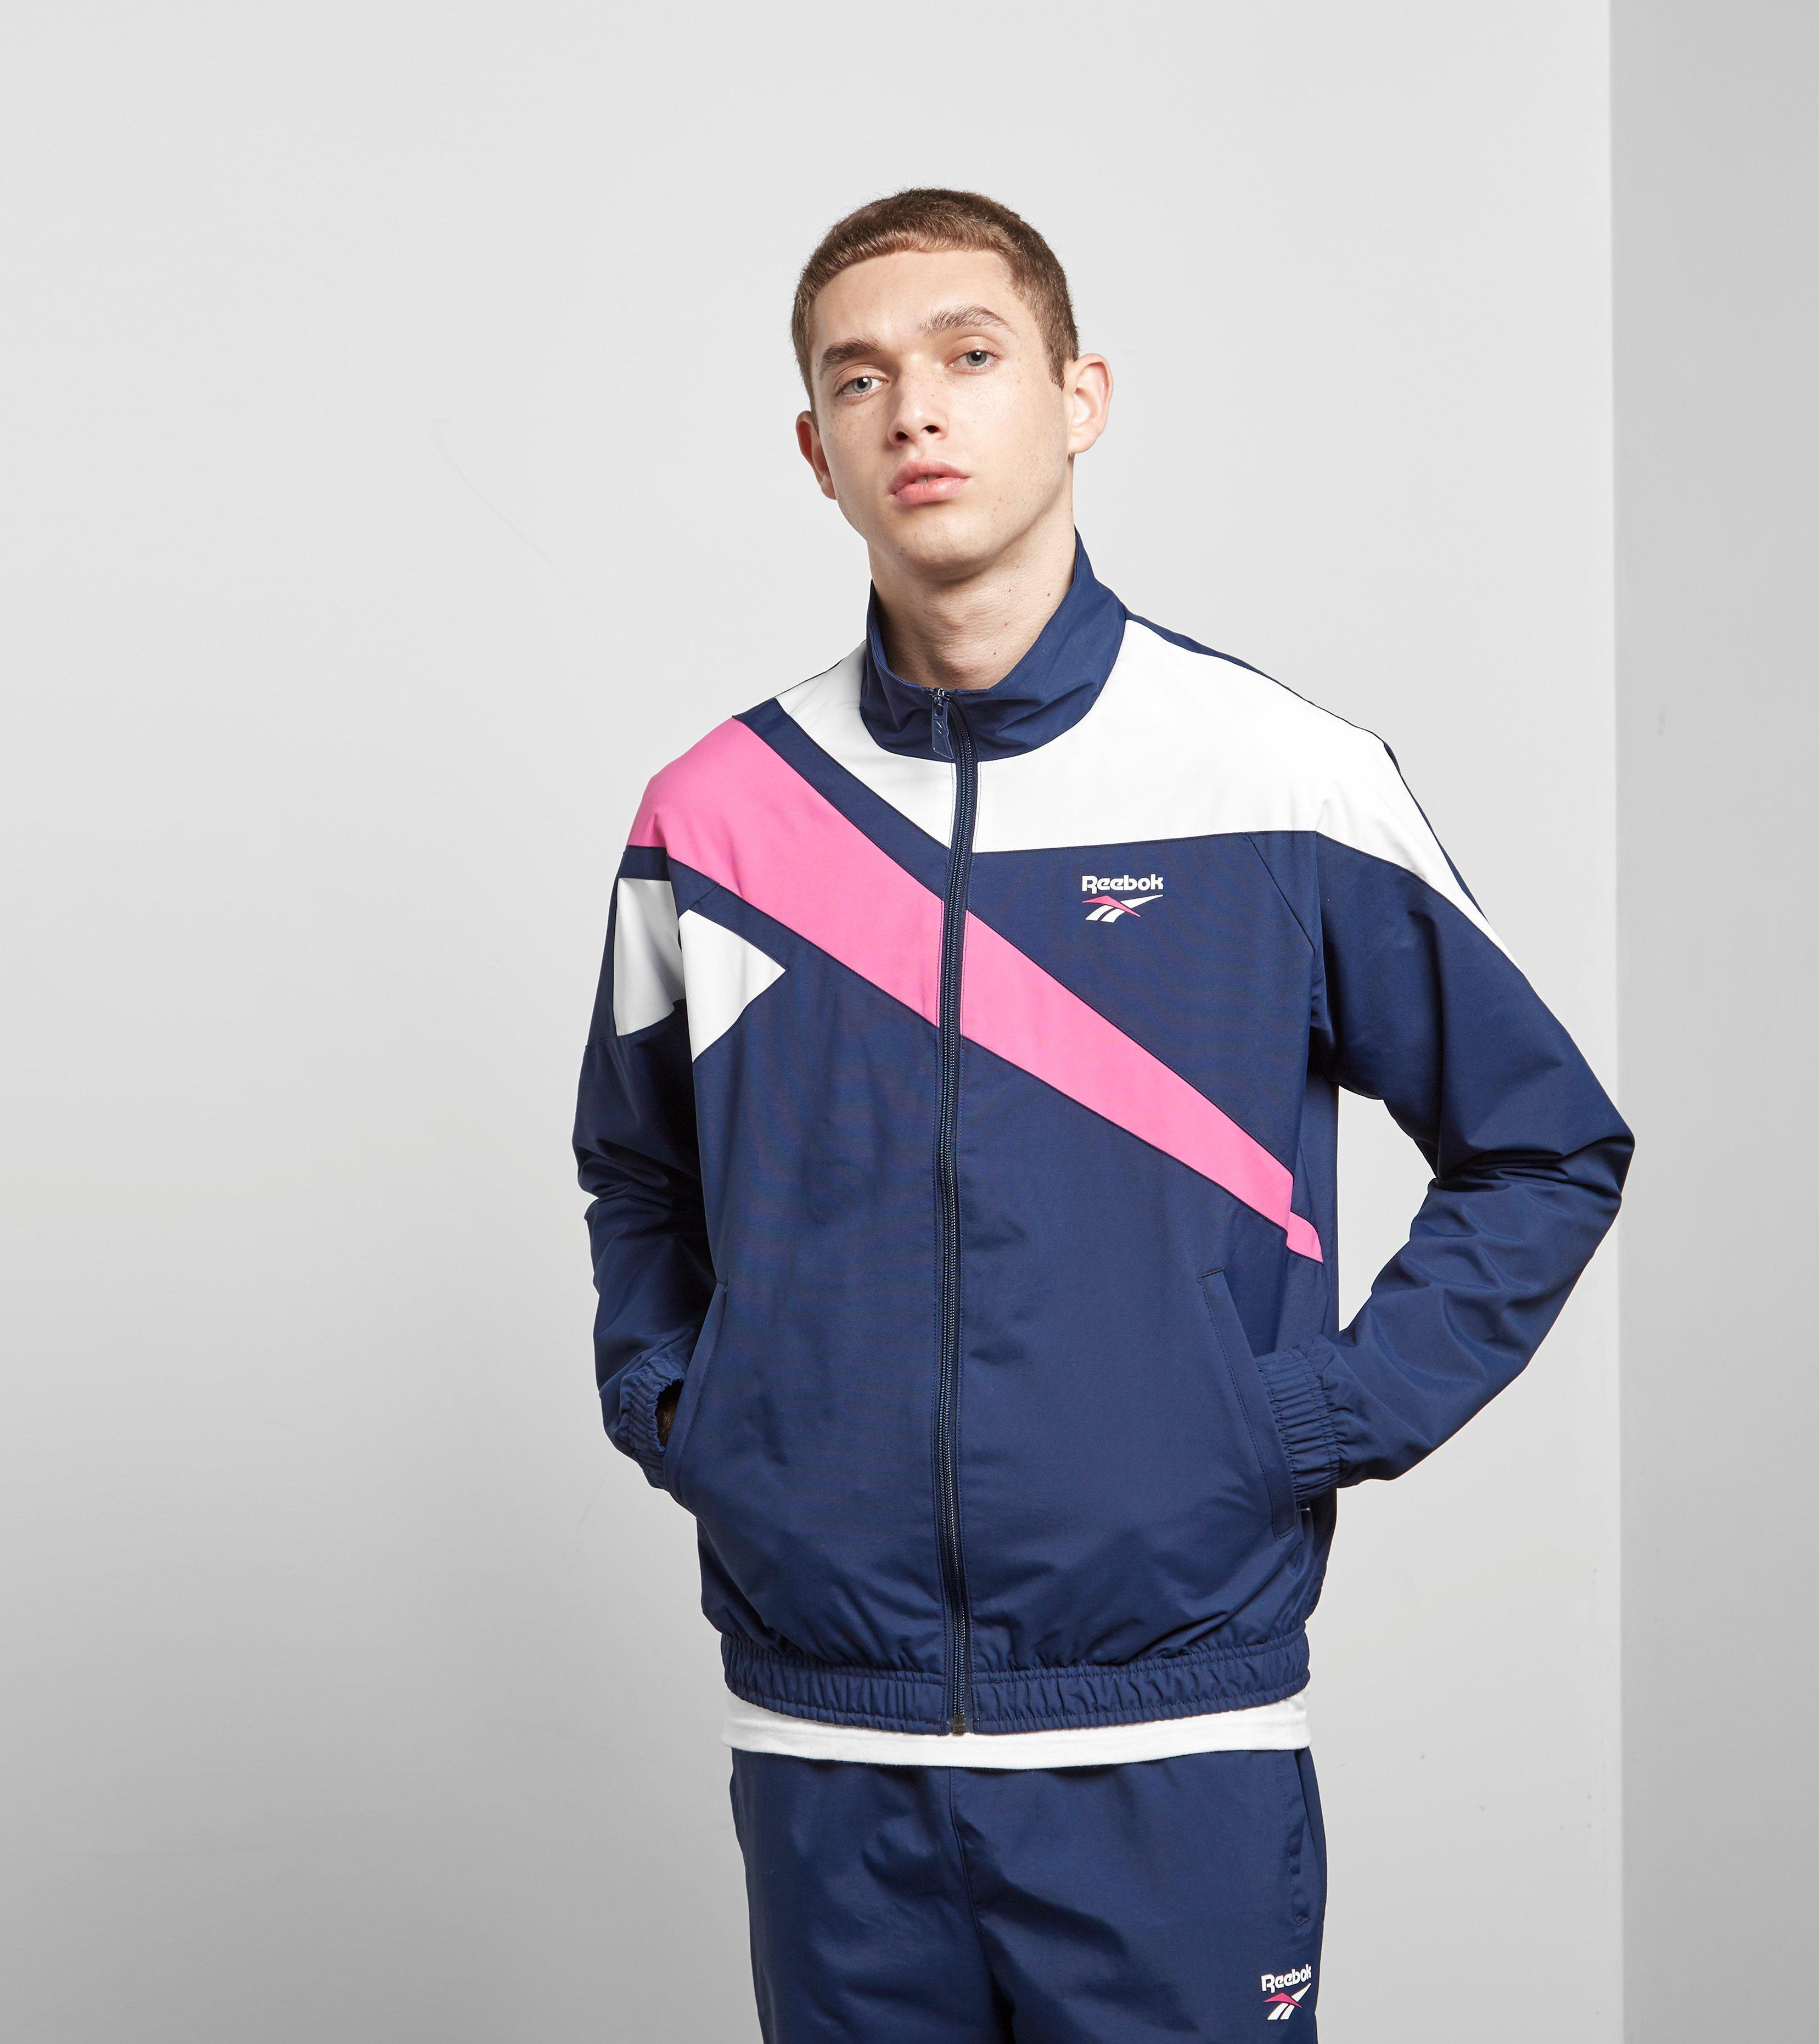 71a858d3141 Lyst - Reebok Classic Track Top in Blue for Men